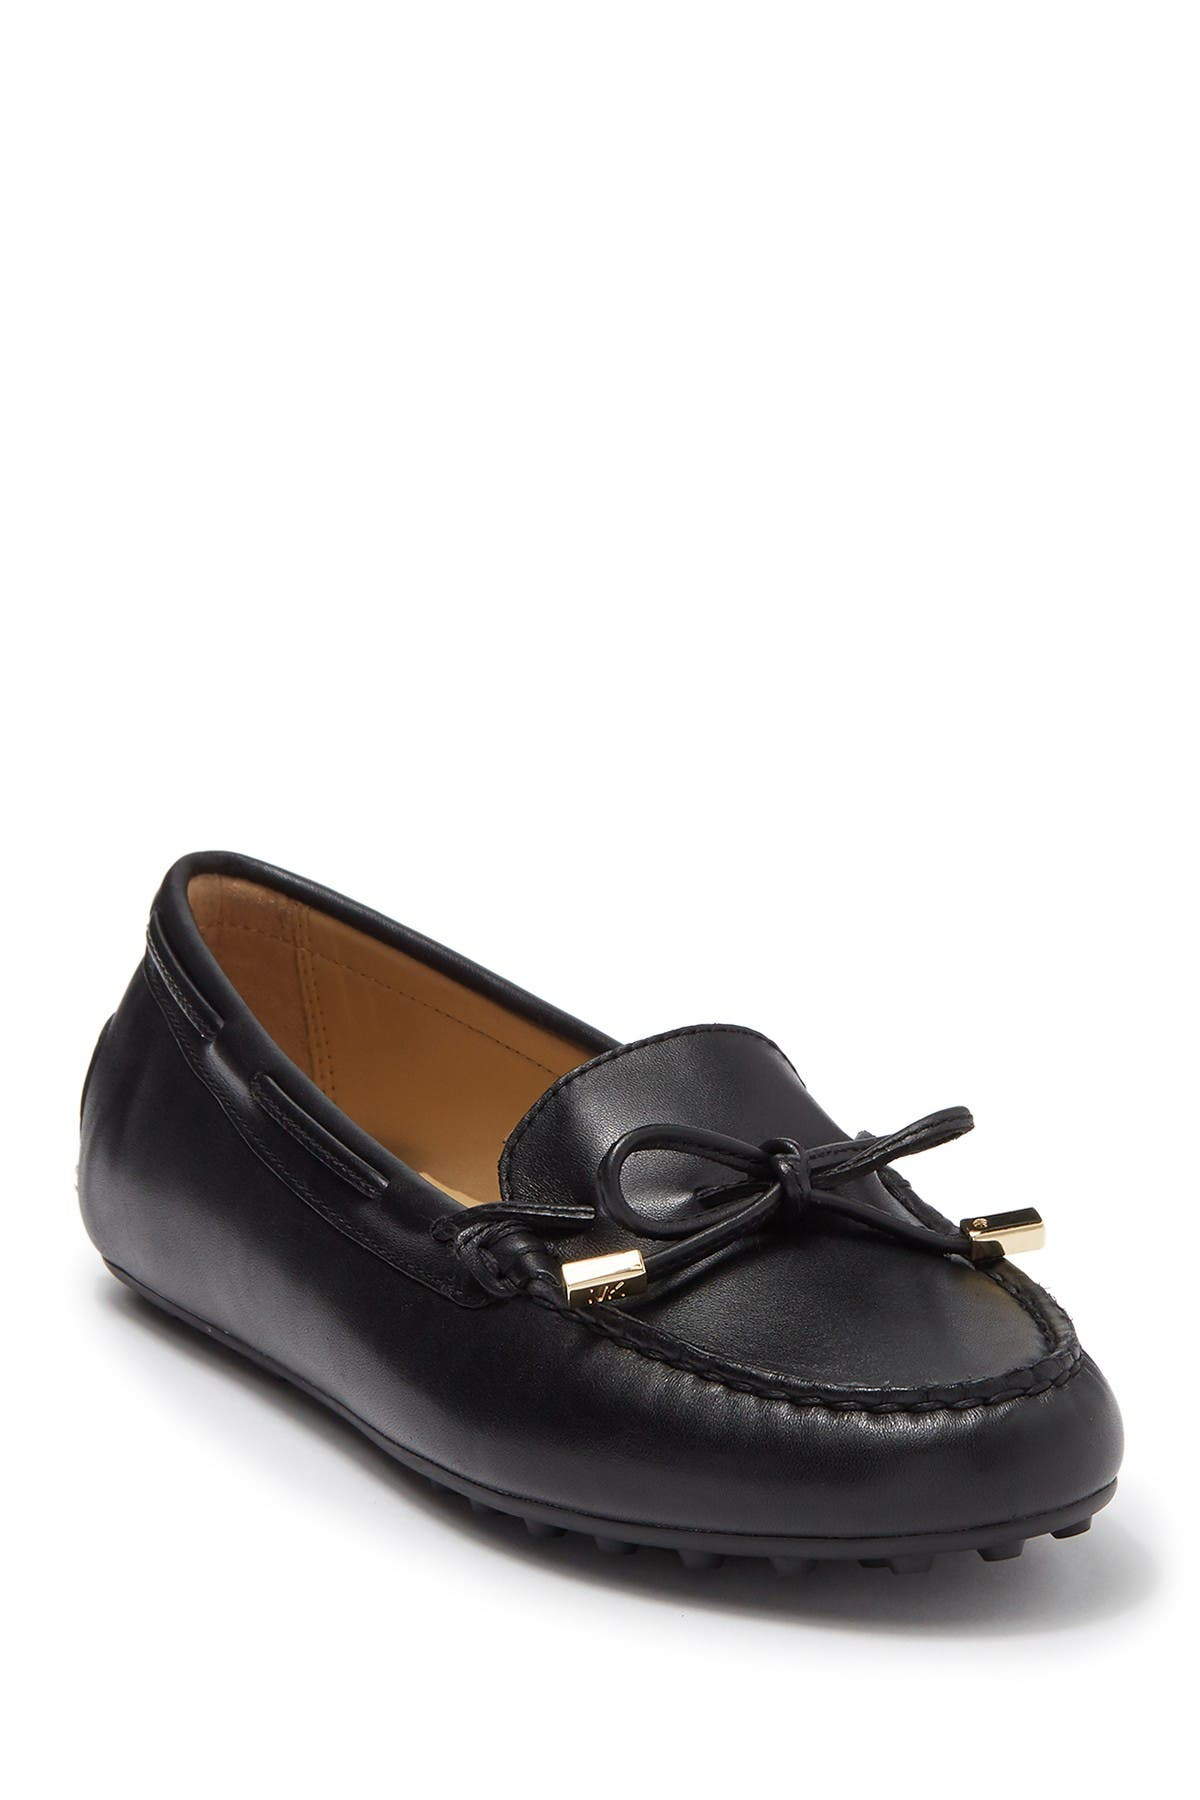 Image of MICHAEL Michael Kors Daisy Moc Loafer